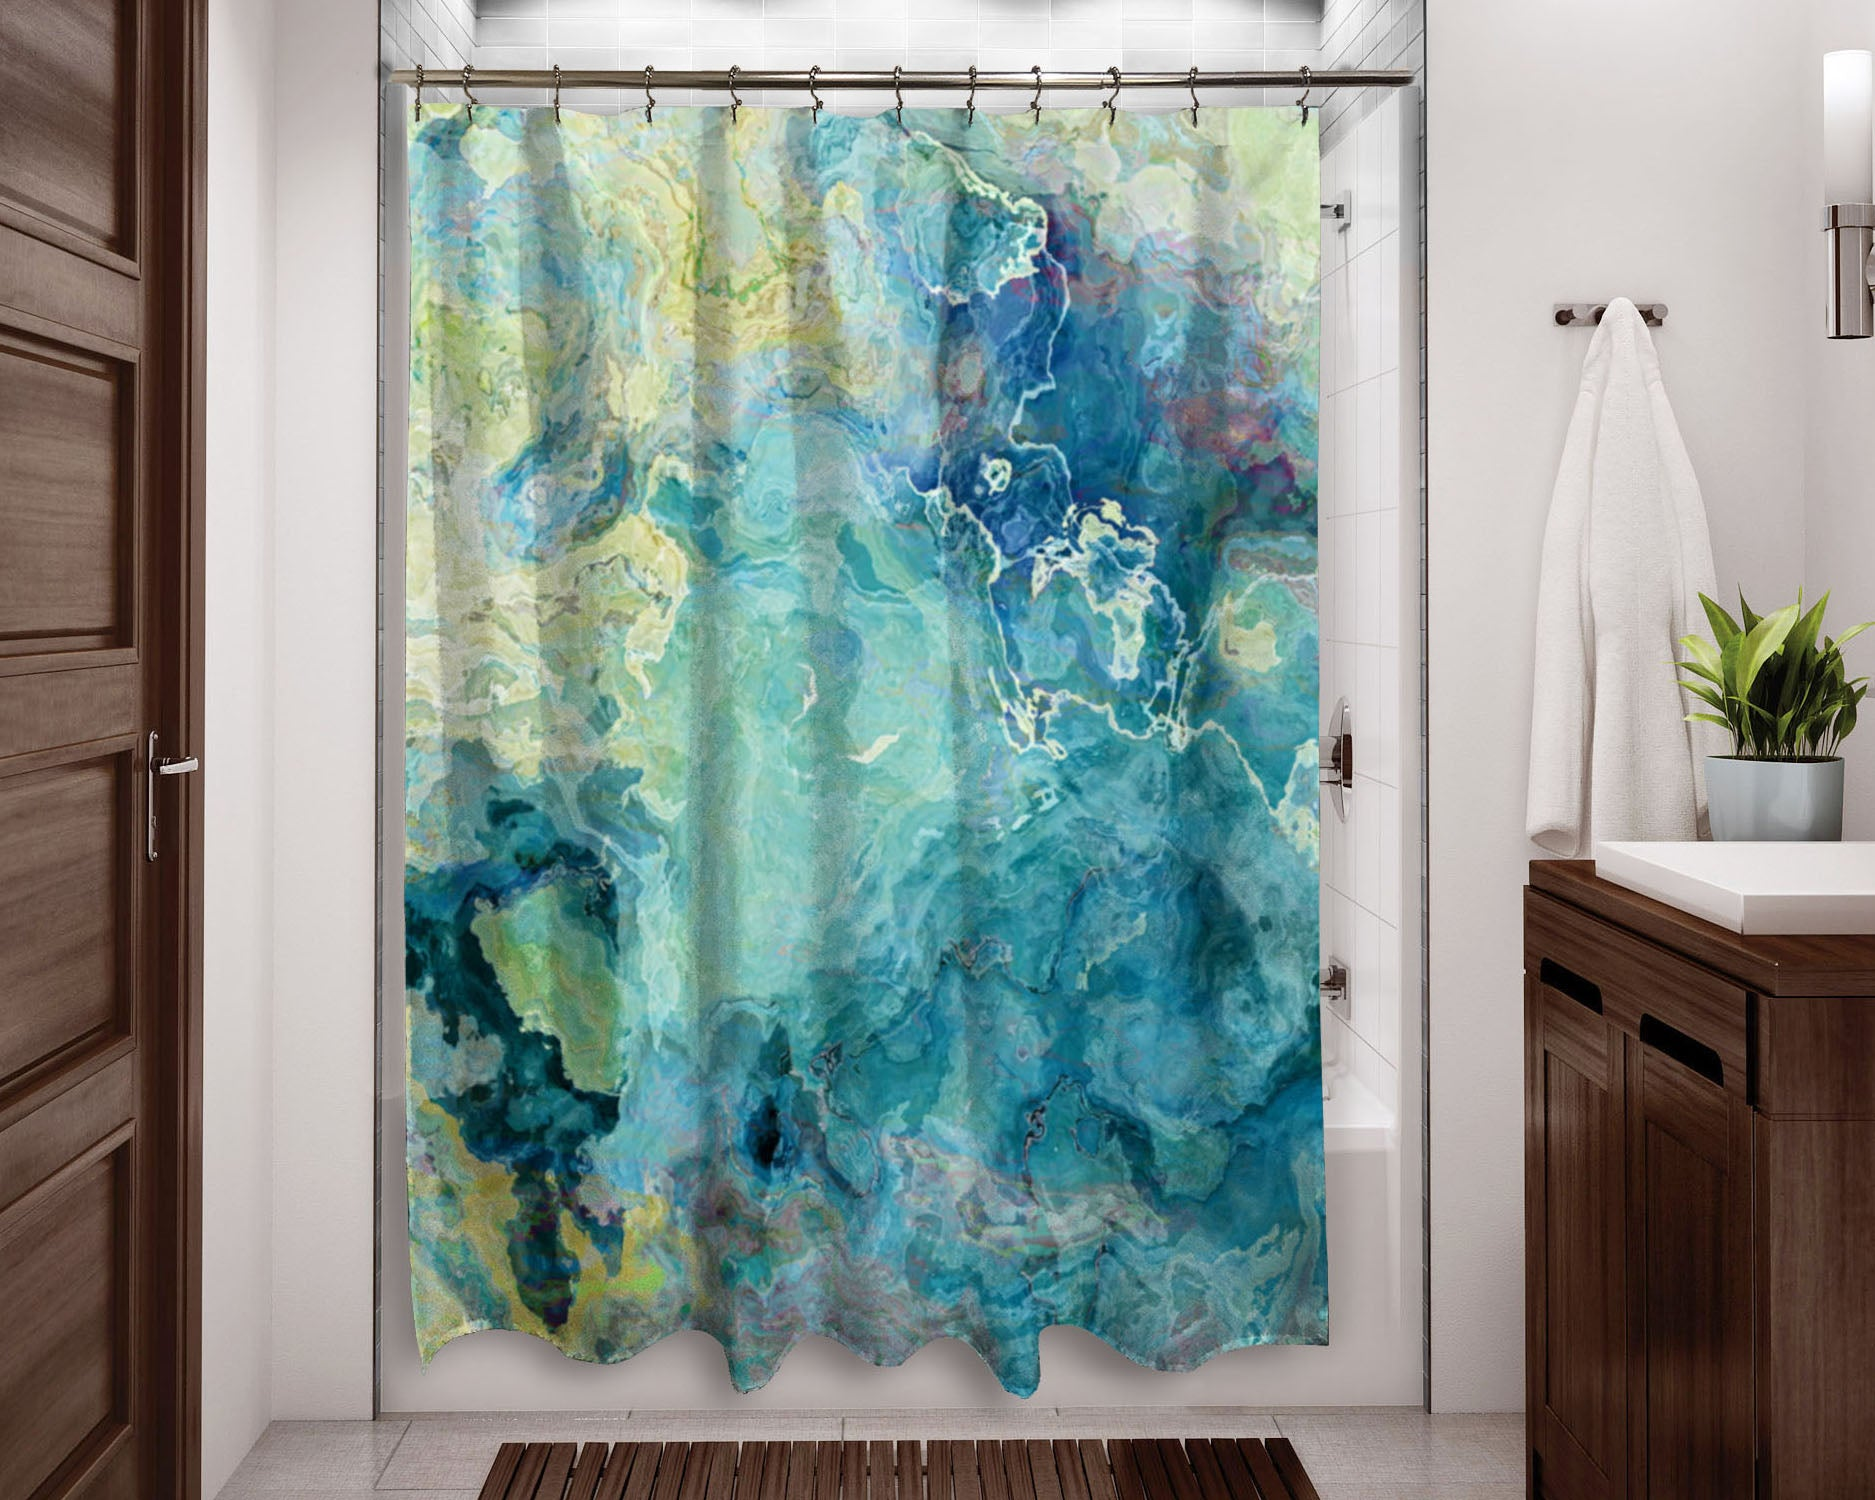 Abstract Shower Curtain Art